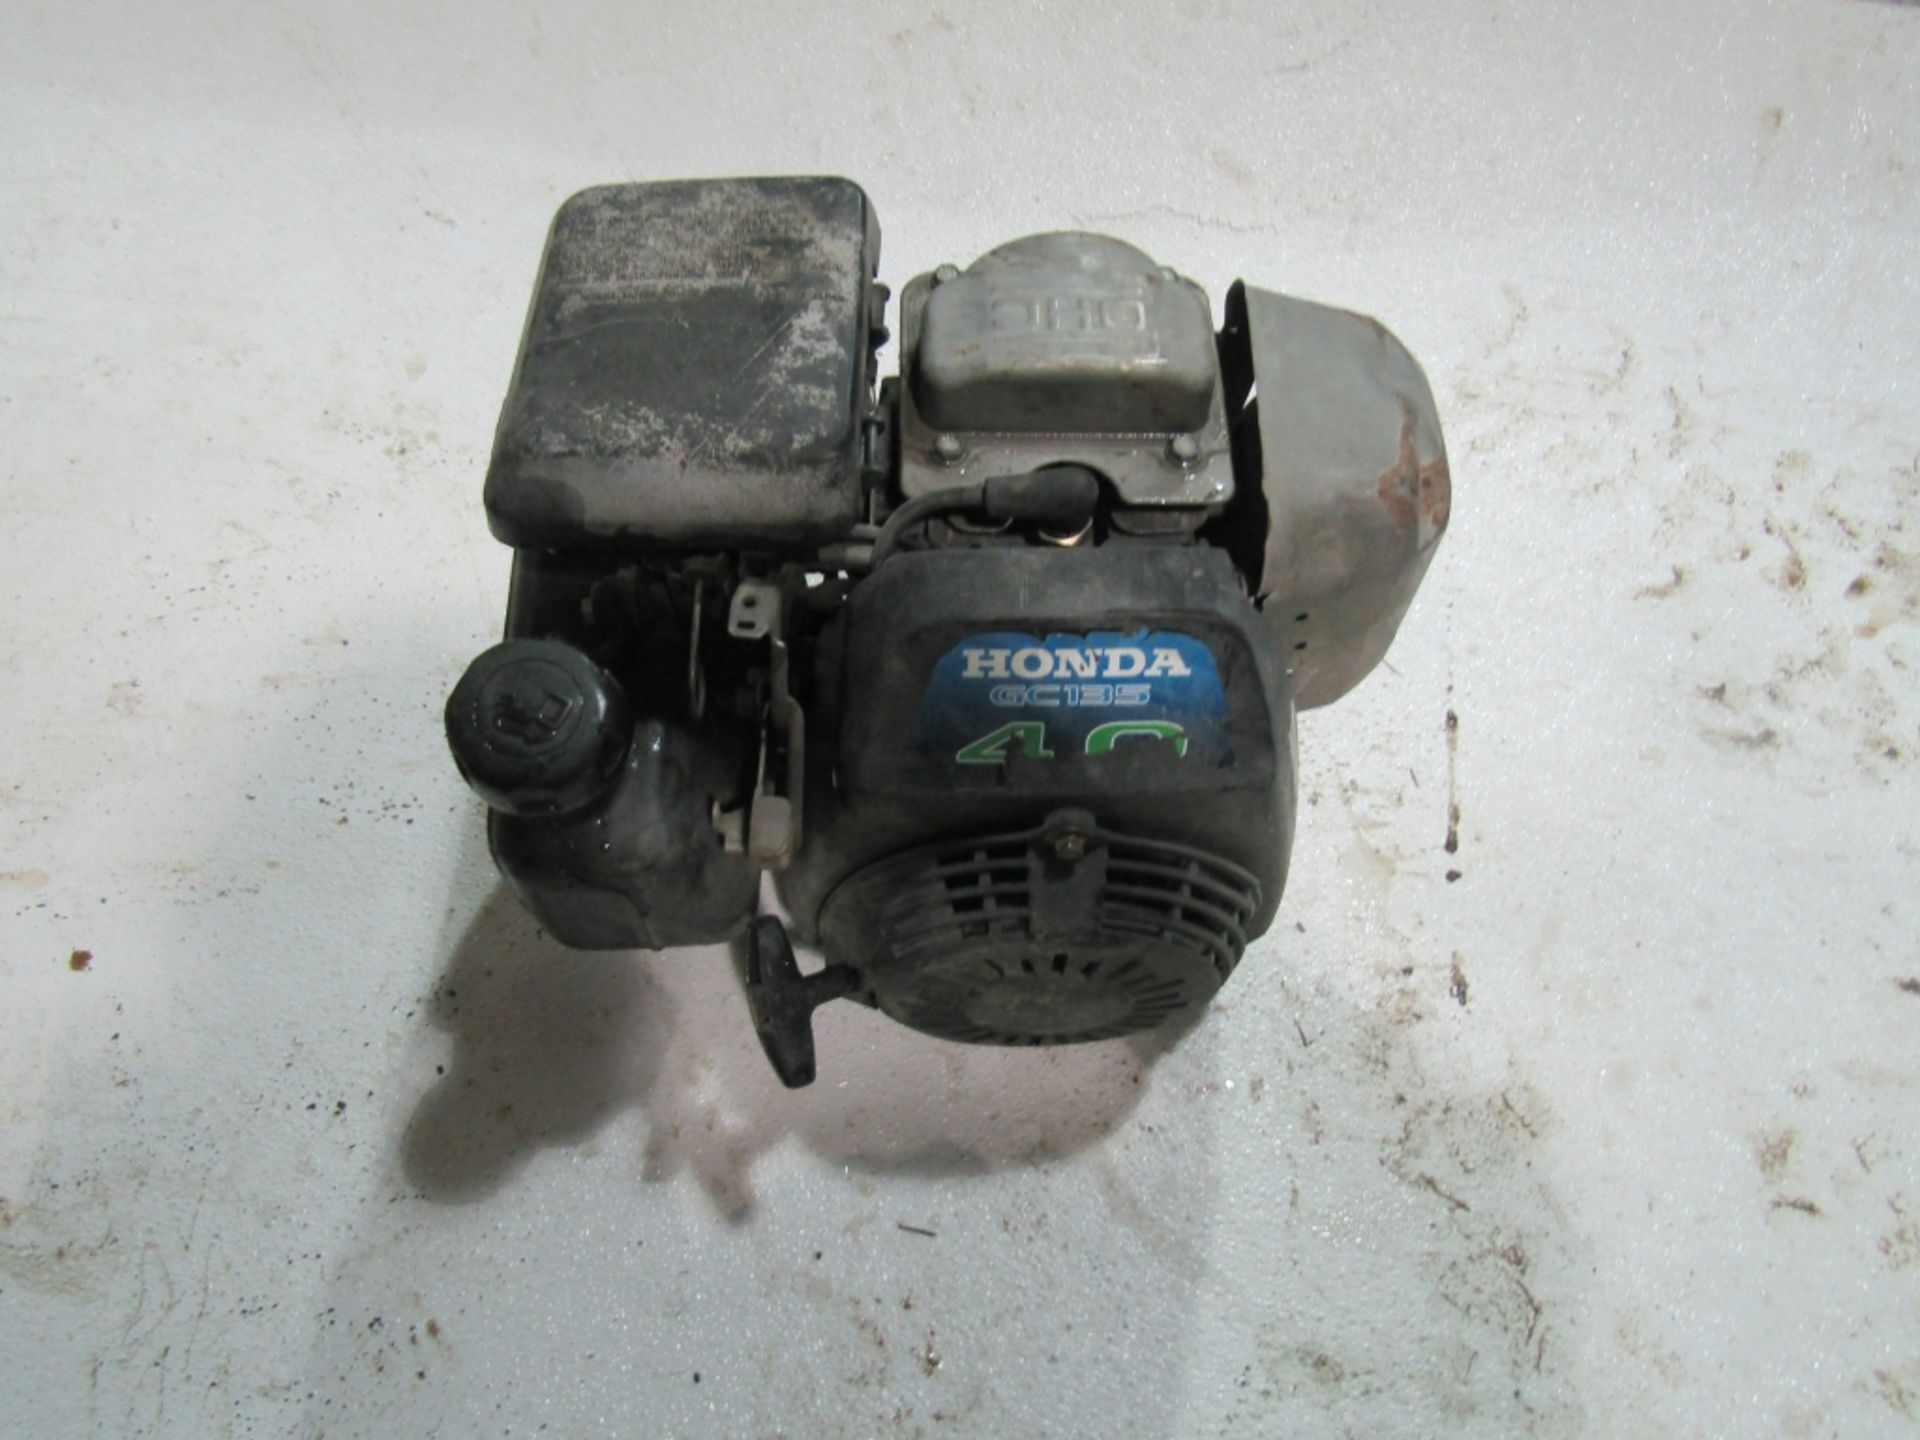 Lot 288 - Honda GC135 4.0 HP Engine, Located in Winterset, IA